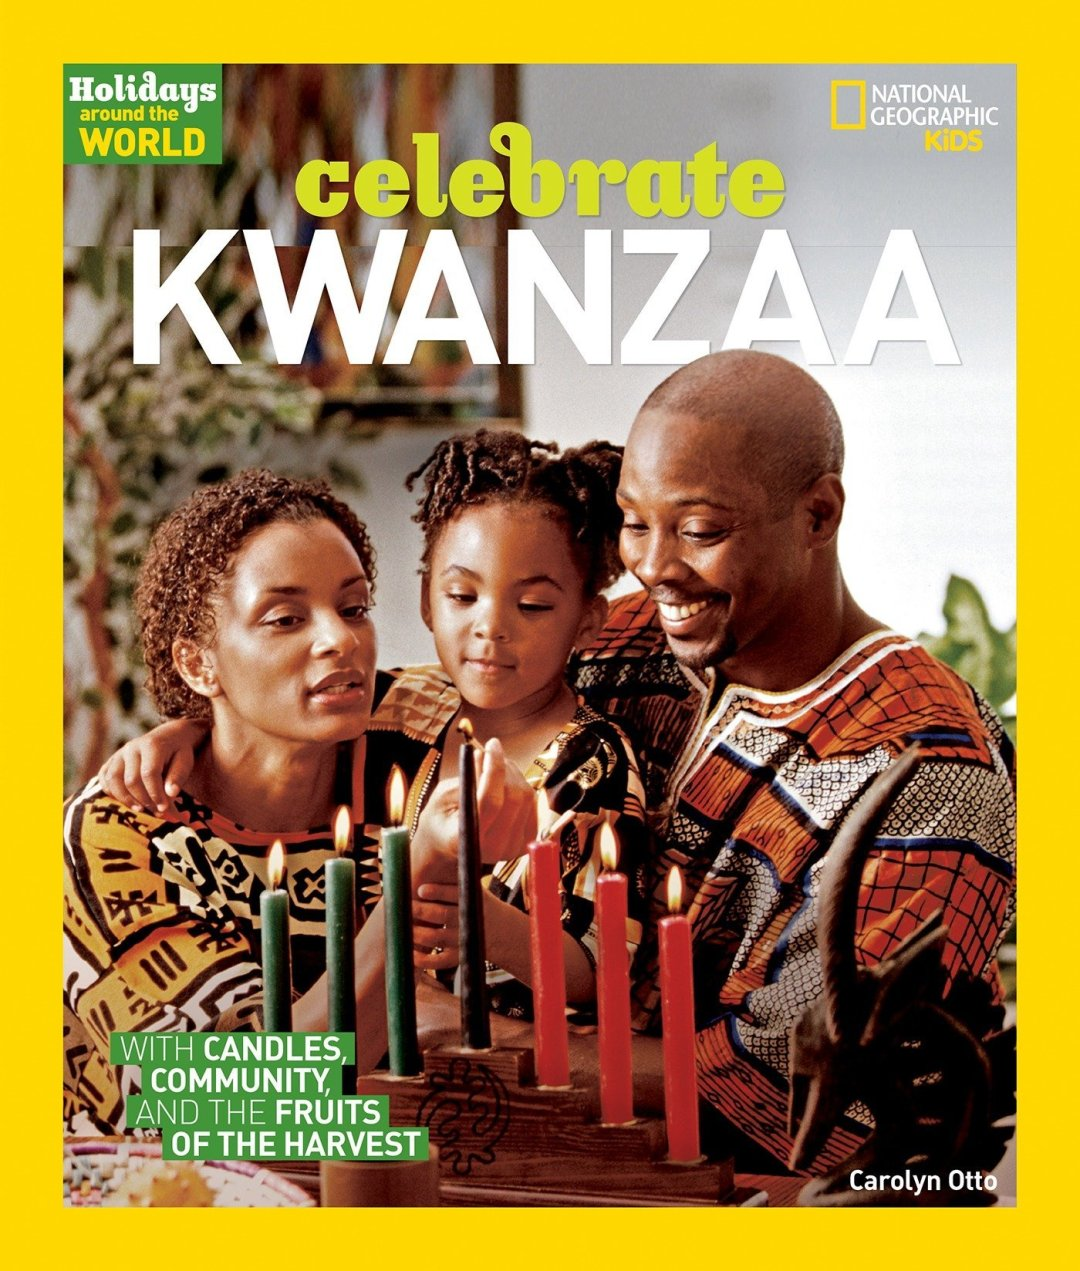 81Xm1qyK-5L Kwanzaa Books to Add to Your Collection